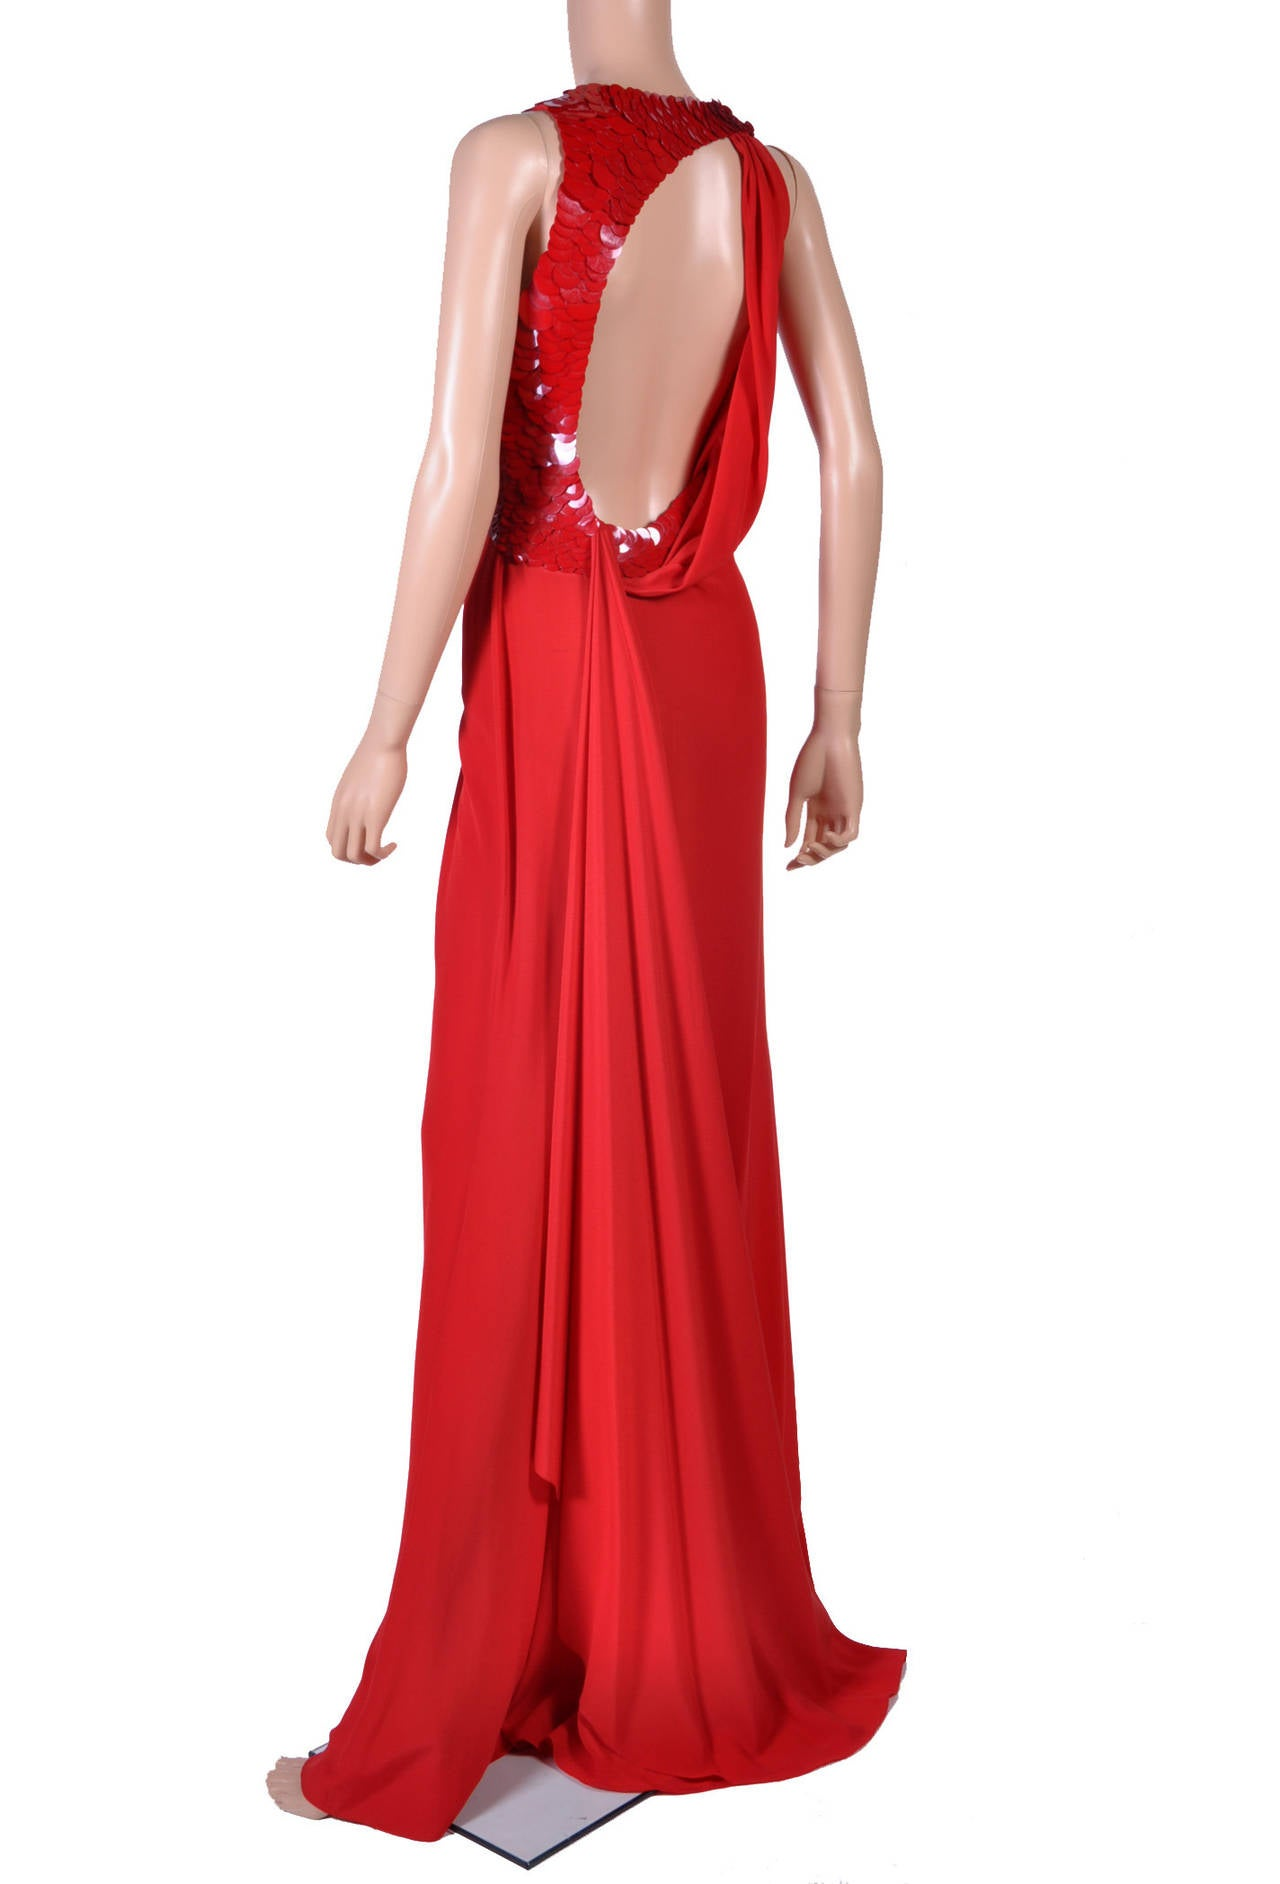 VERSACE Embellished Red Silk Gown on Emmy's list of the most iconic! 7